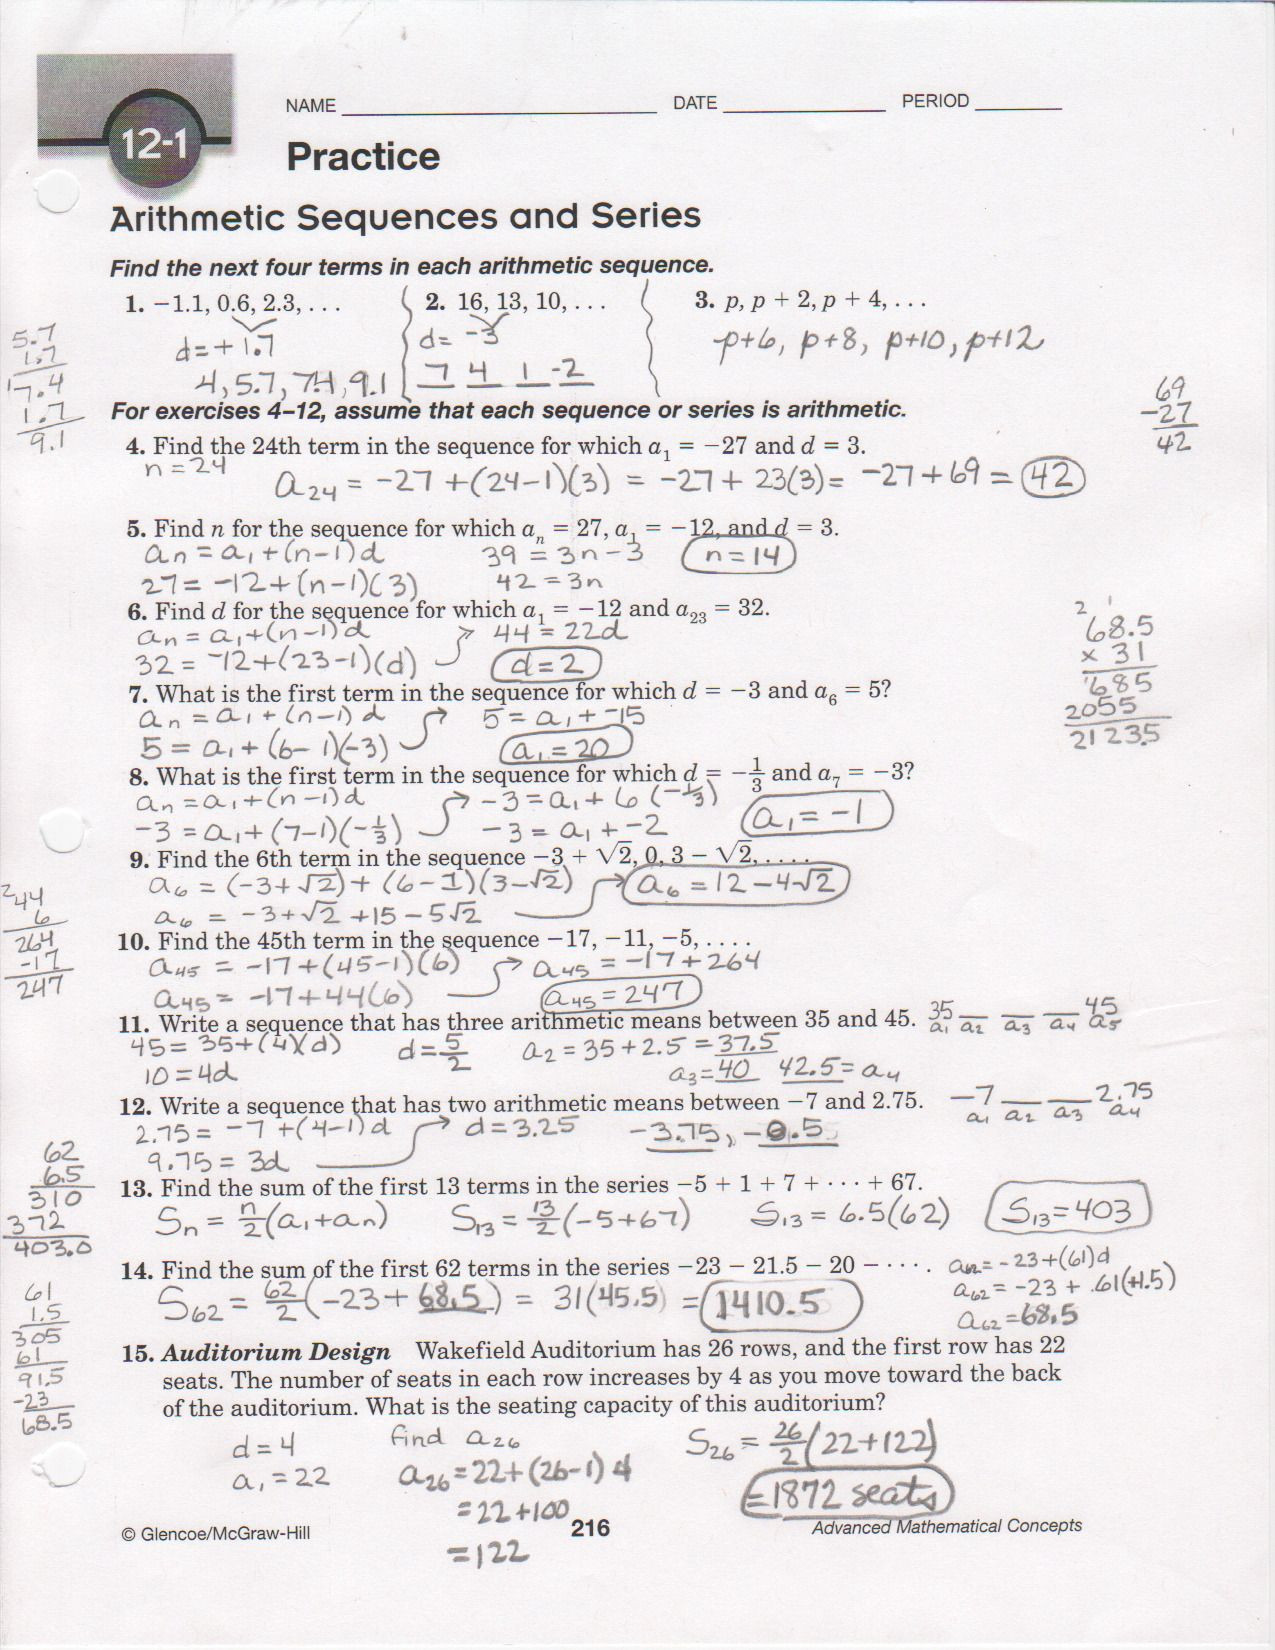 Sequences and Series Worksheet Answers Arithmetic Sequences Worksheet Answer Key Promotiontablecovers